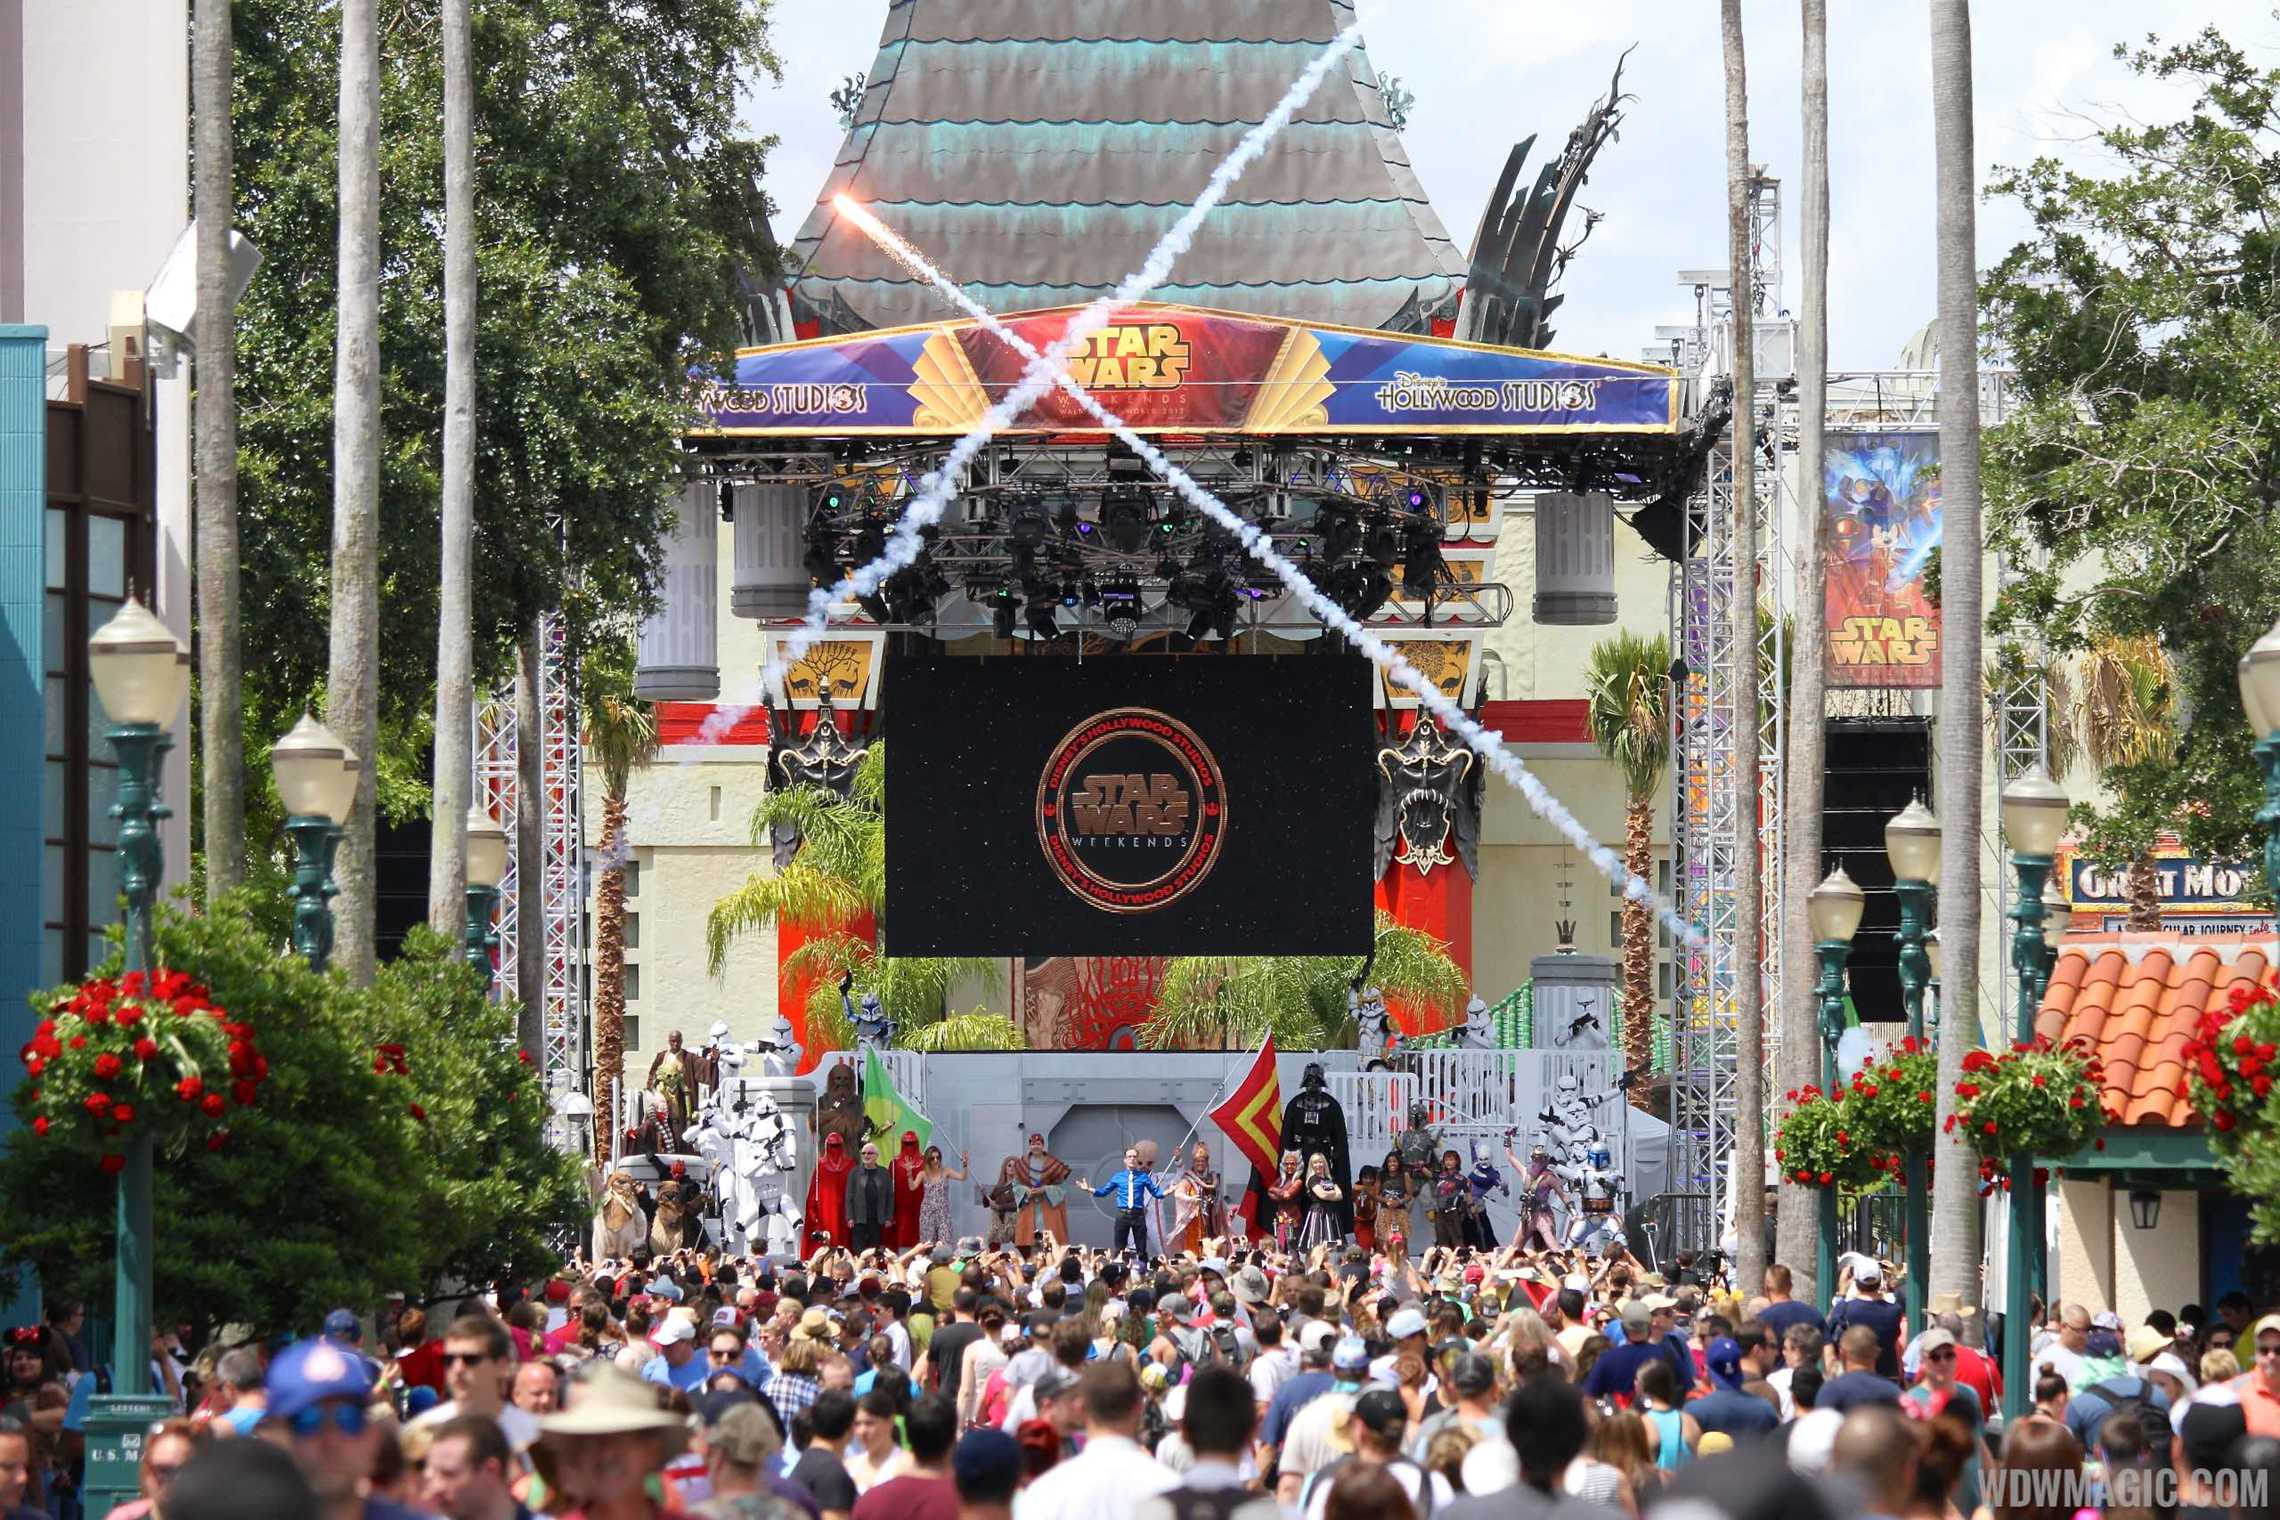 2015 Star Wars Weekends - Weekend 1 Legends of the Force motorcade celebrities - On Stage Welcome